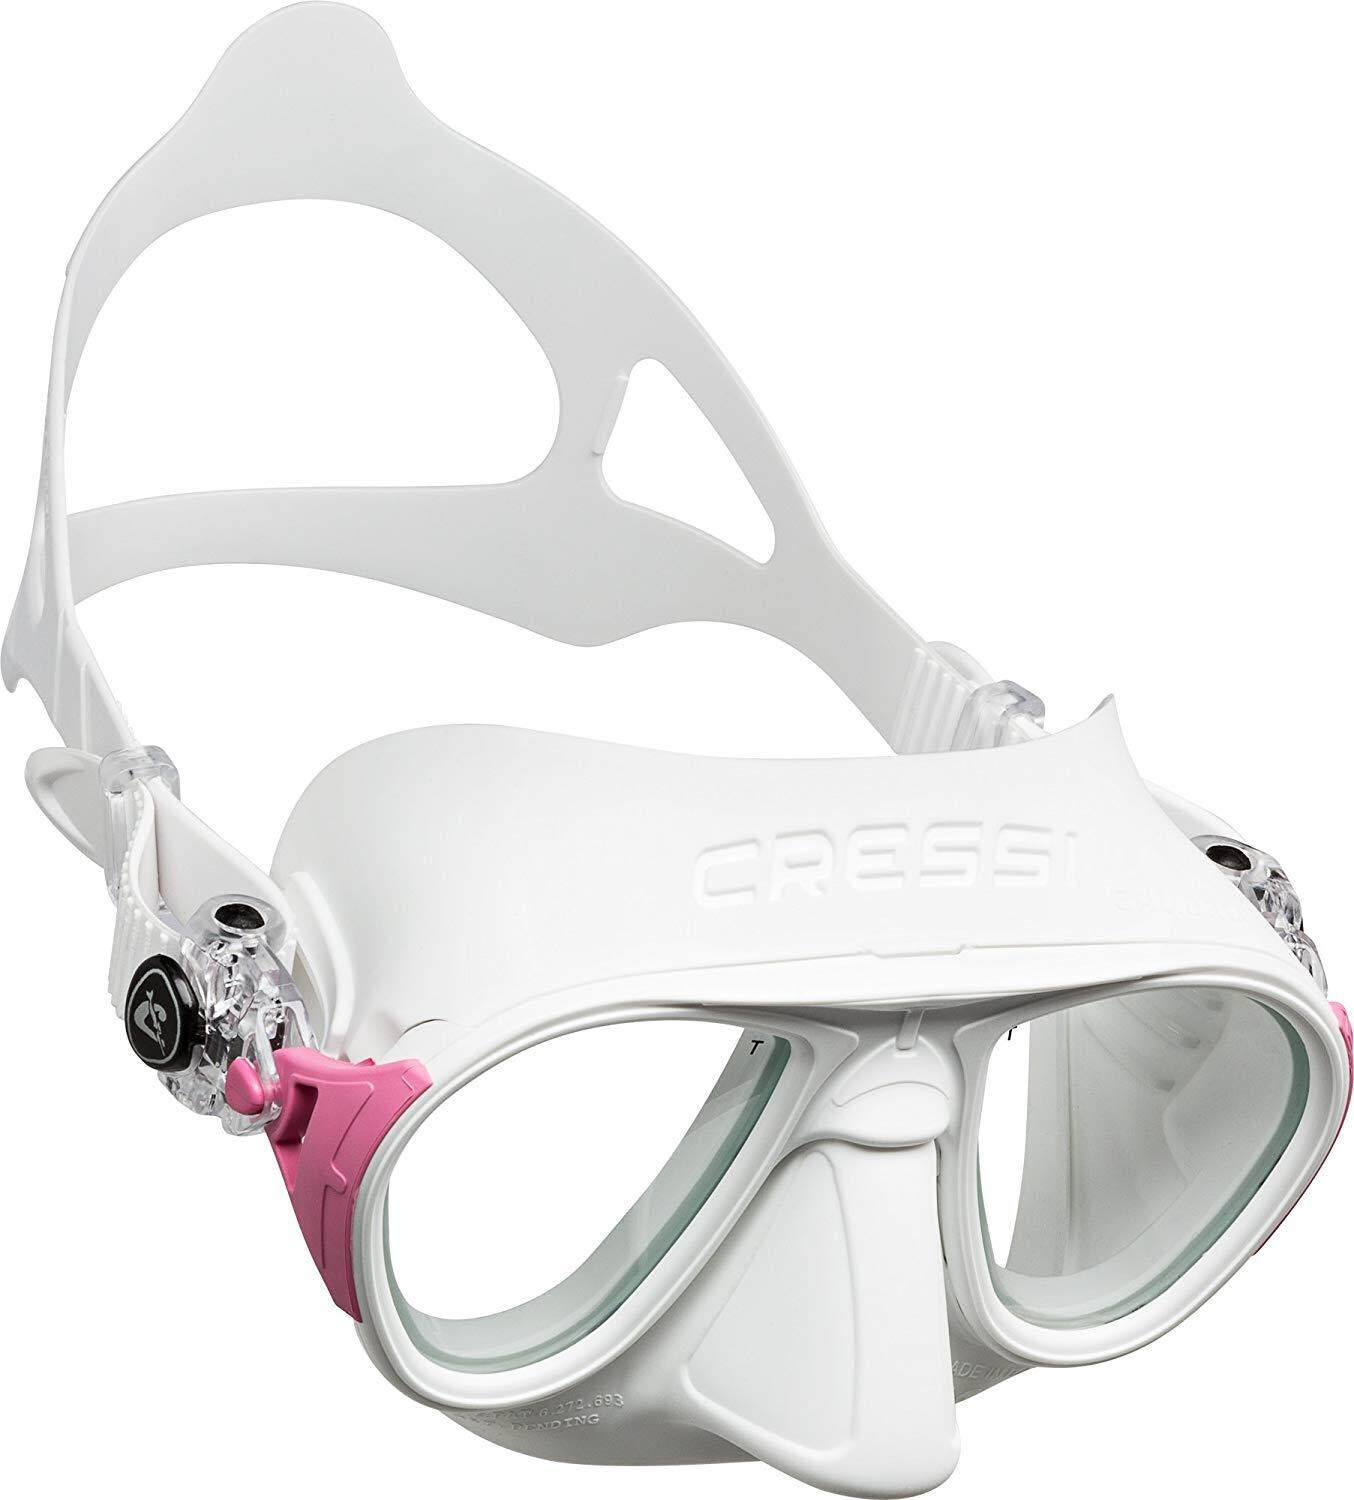 747701236845 Cressi CALIBRO Ultra Low Volume Free Diving Mask Tempered Glass 2 Window  Integrated Dual Frame Matte